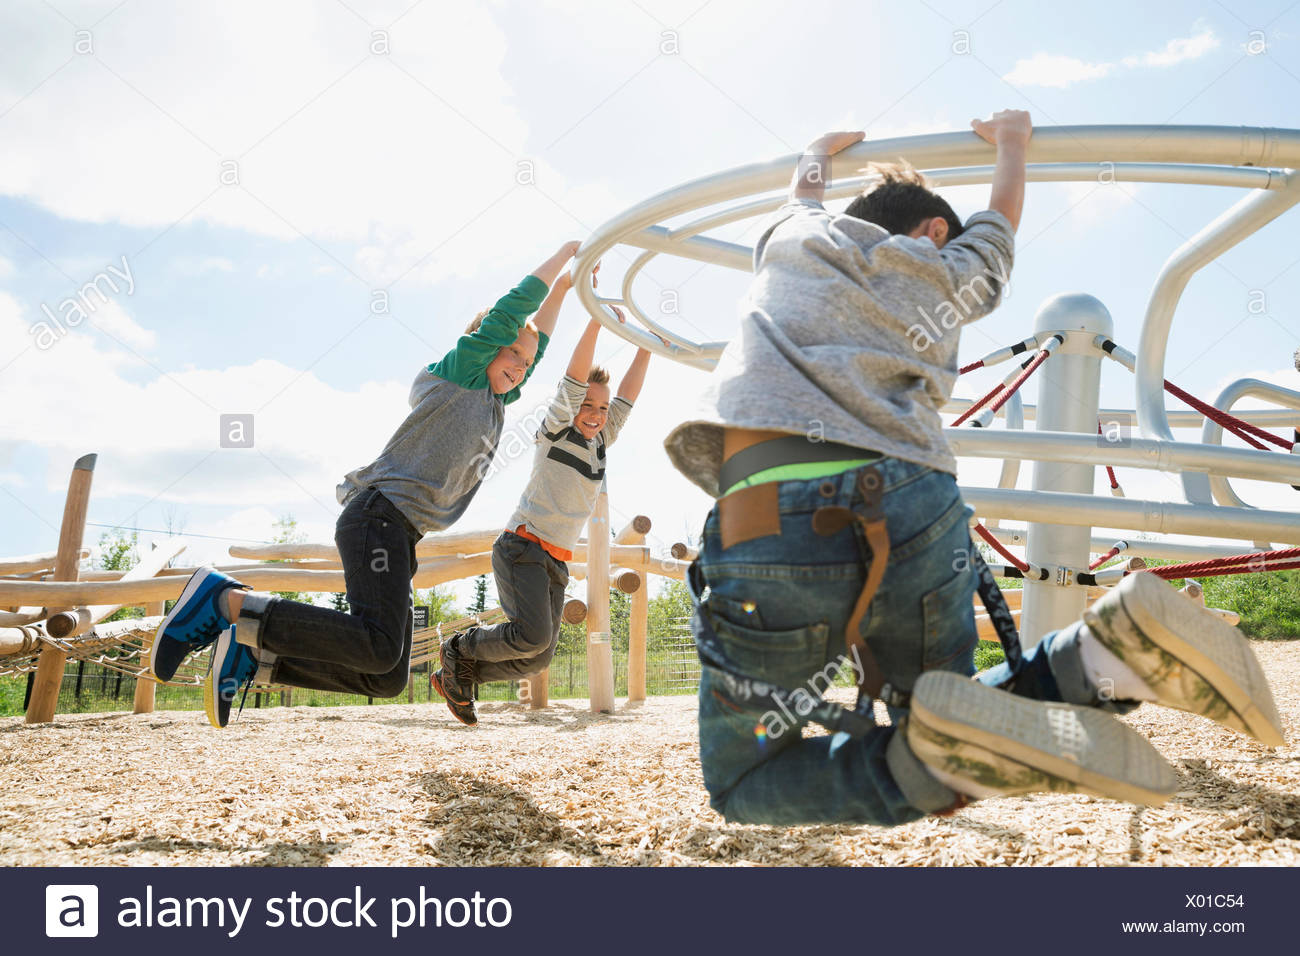 Kids hanging from swinging bar at sunny playground - Stock Image